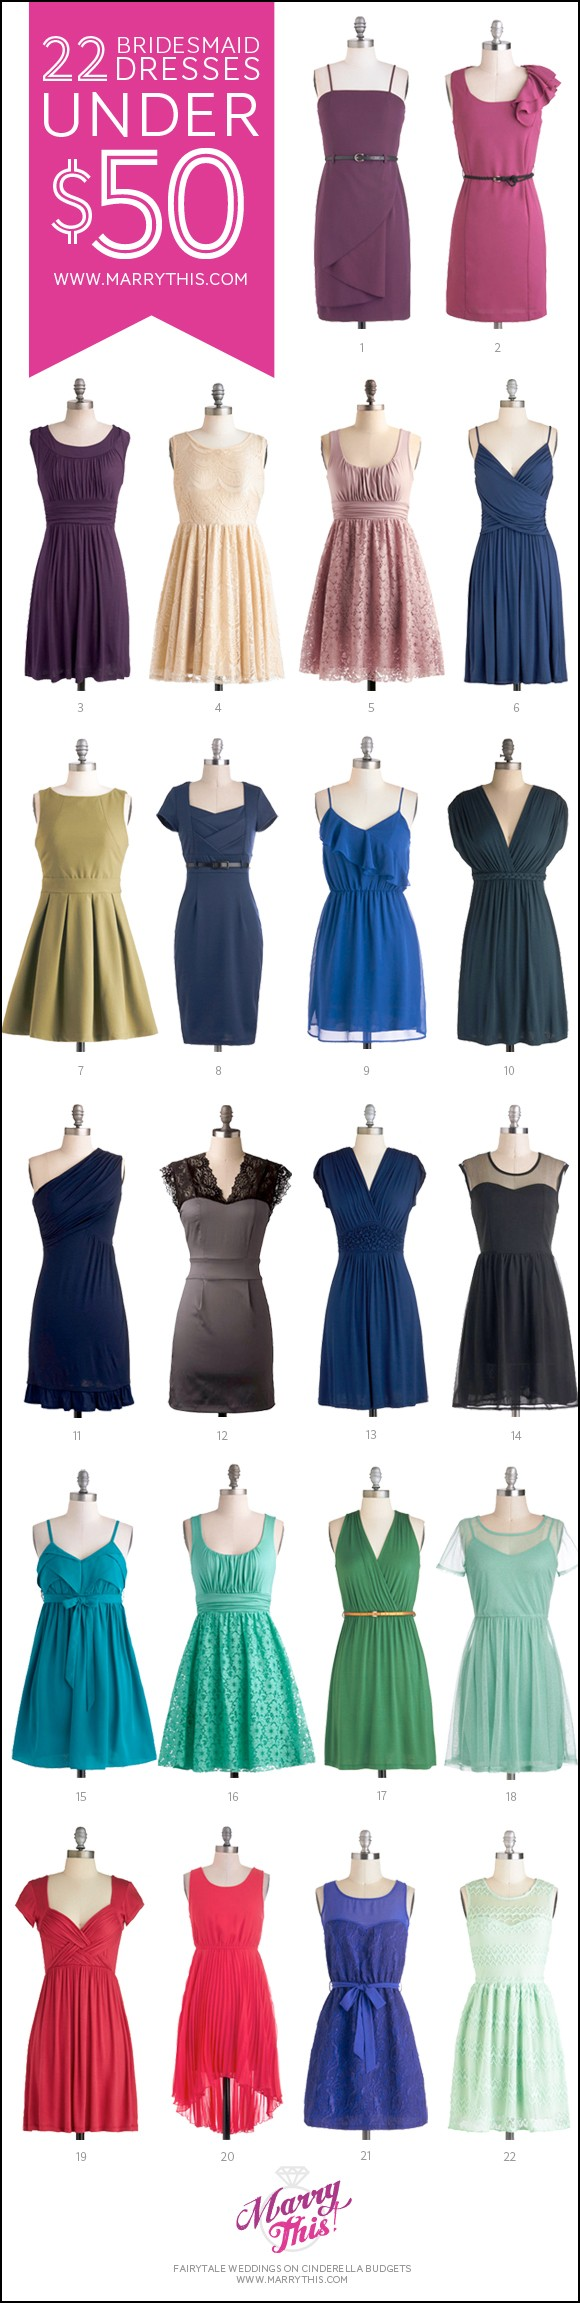 Bridesmaids dresses under 50 dollars dresses and gowns ideas bridesmaids dresses under 50 dollars ombrellifo Gallery